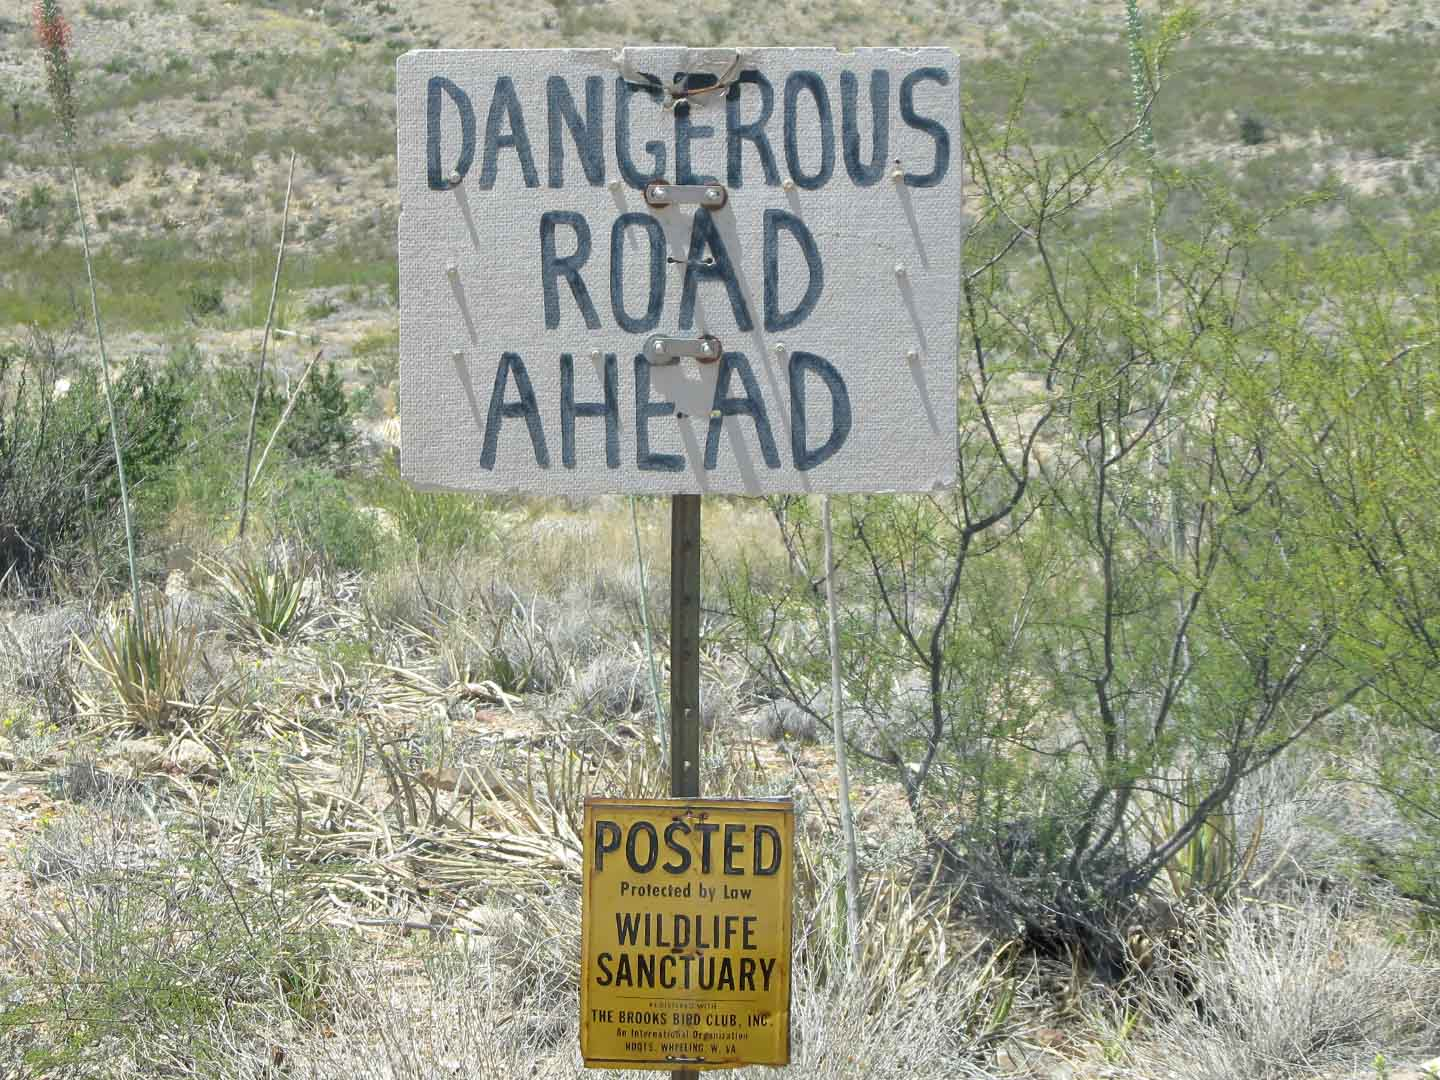 Dangerous Road Ahead